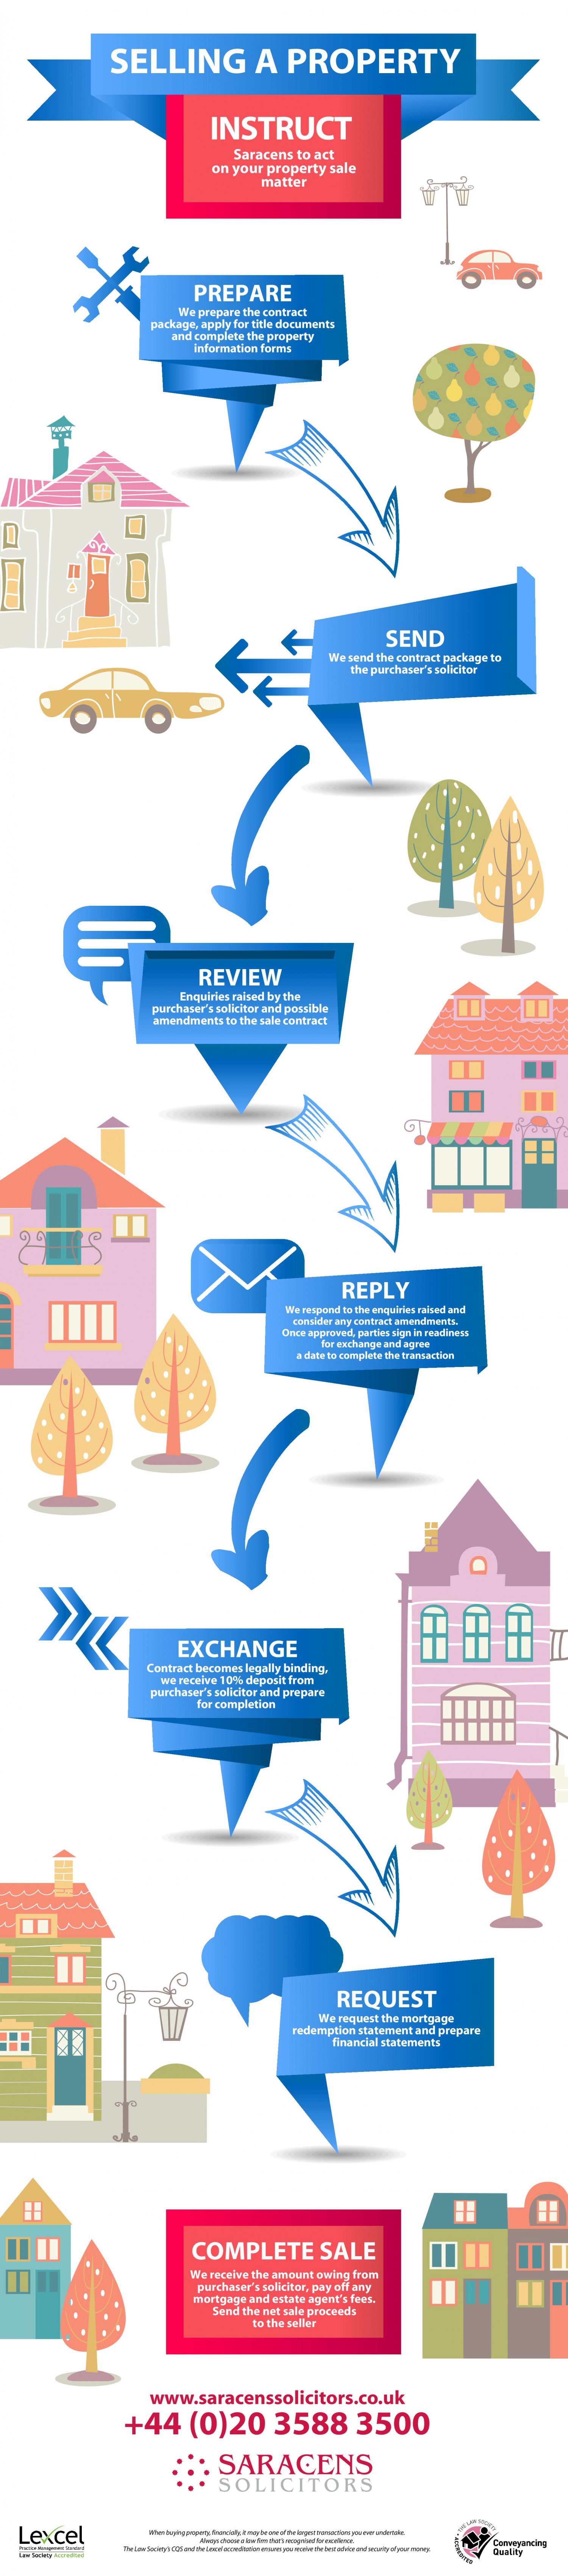 Selling A Property- What Should a Solicitor do? Infographic